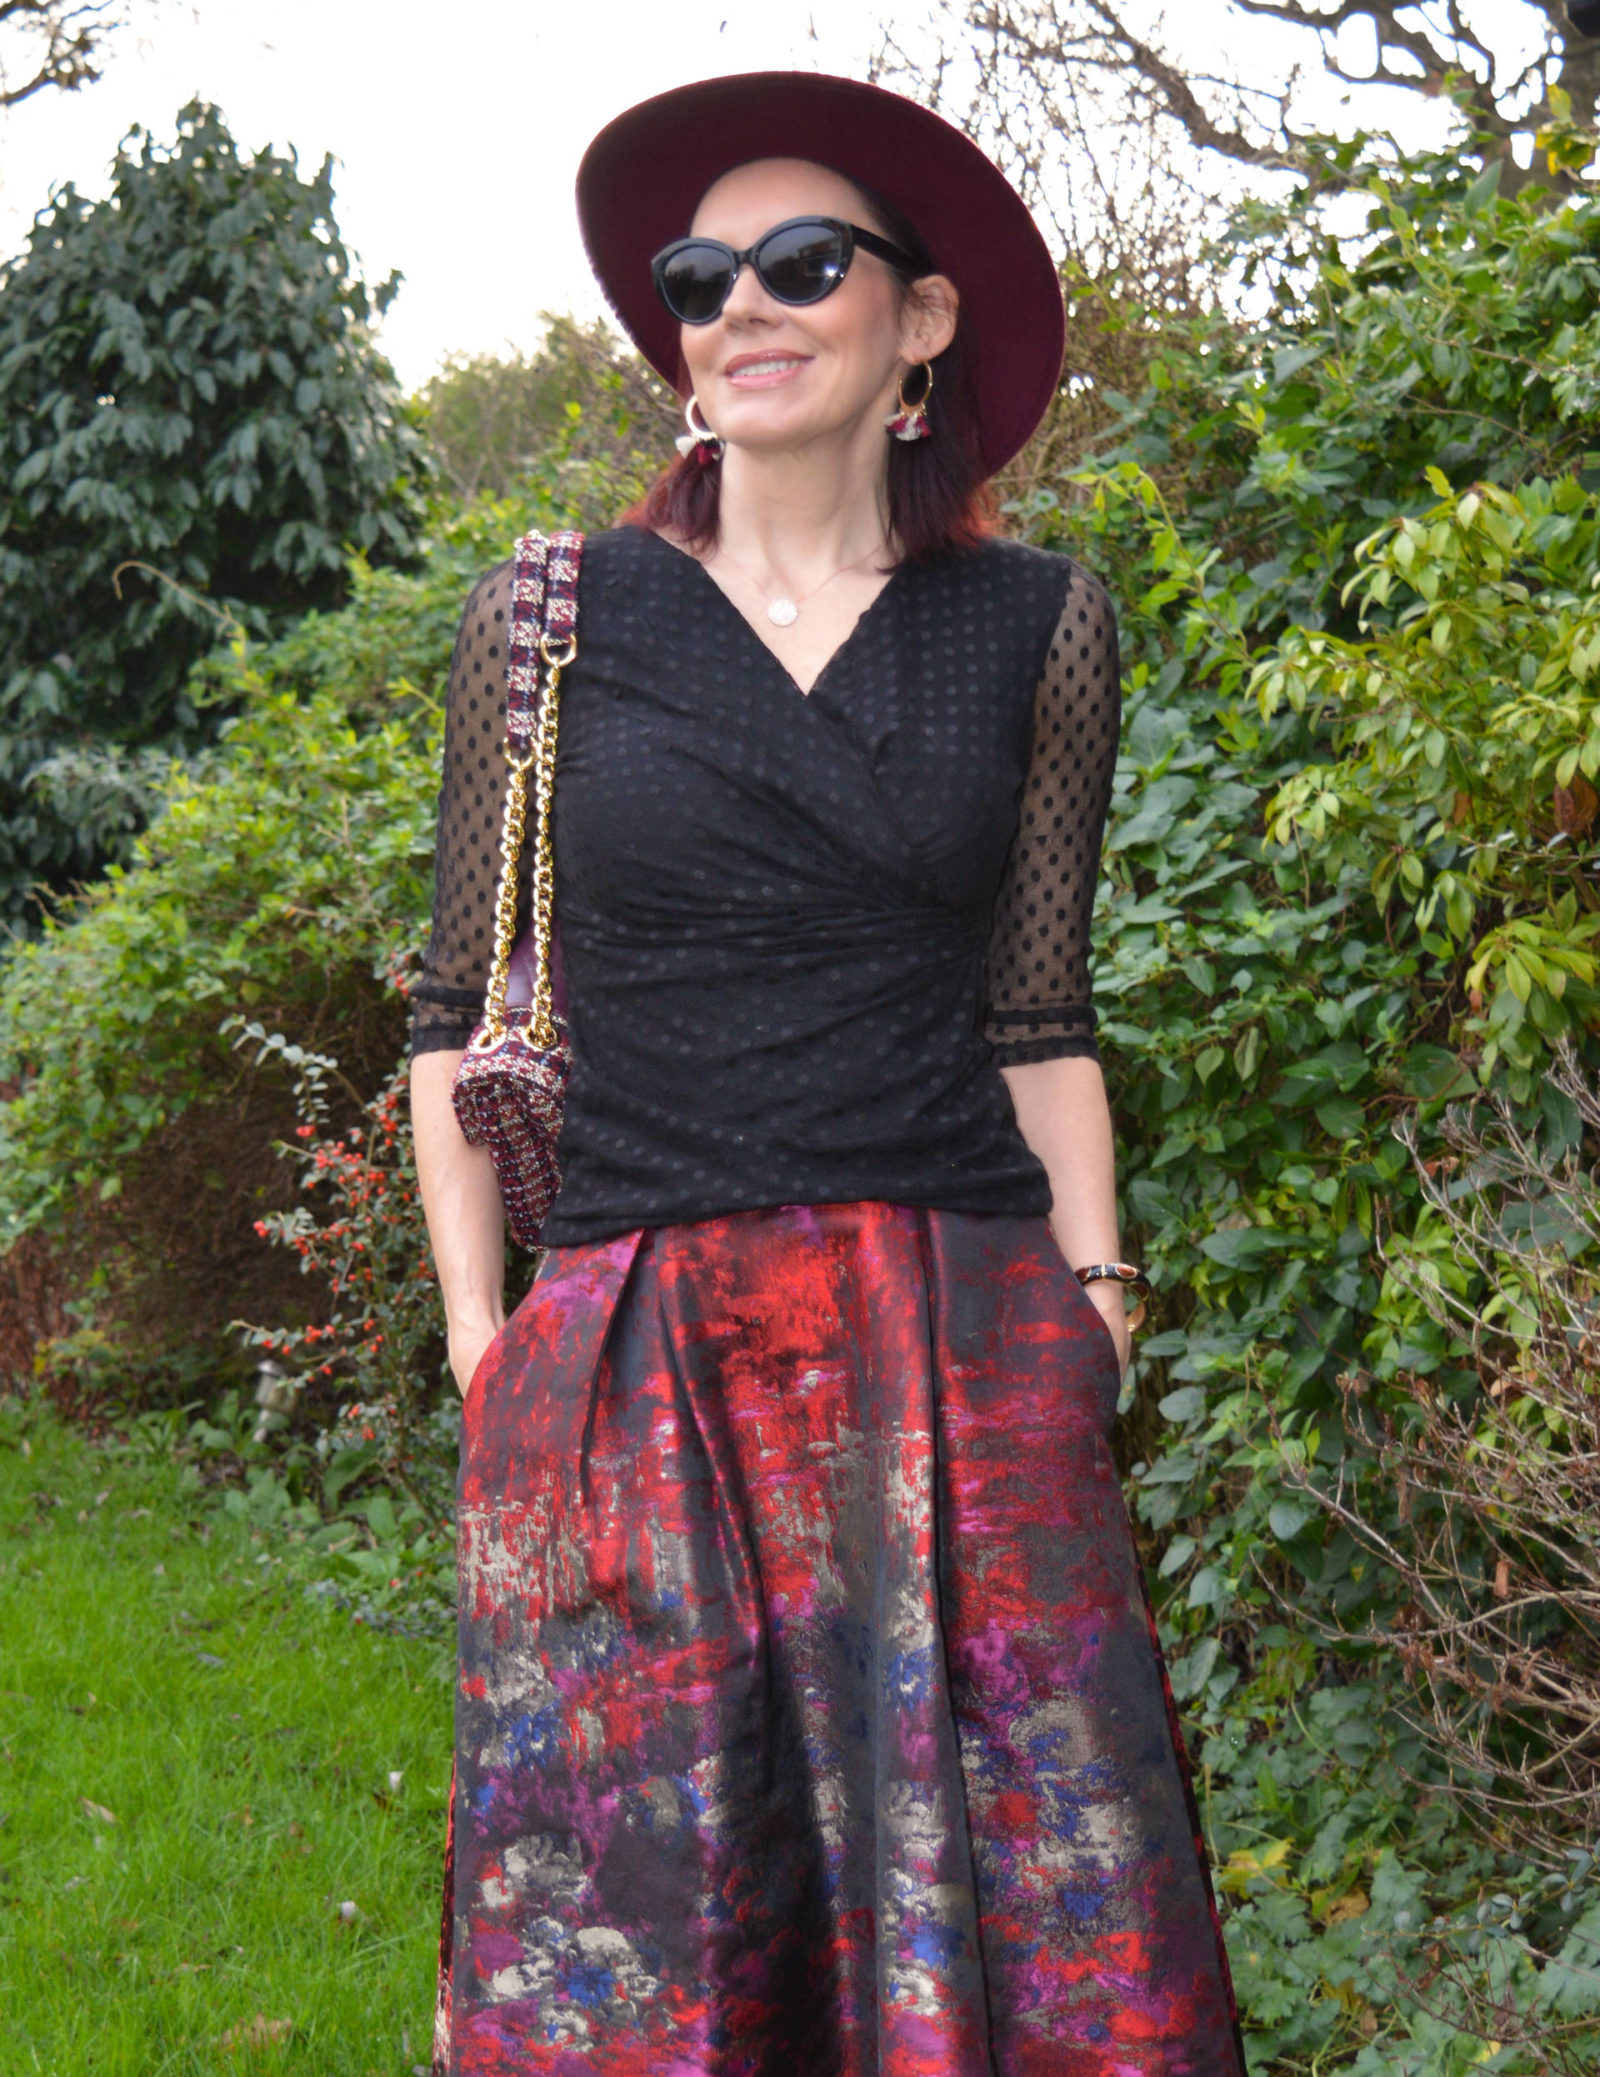 FitFlop sock boots and Joanna Hope jacquard maxi skirt